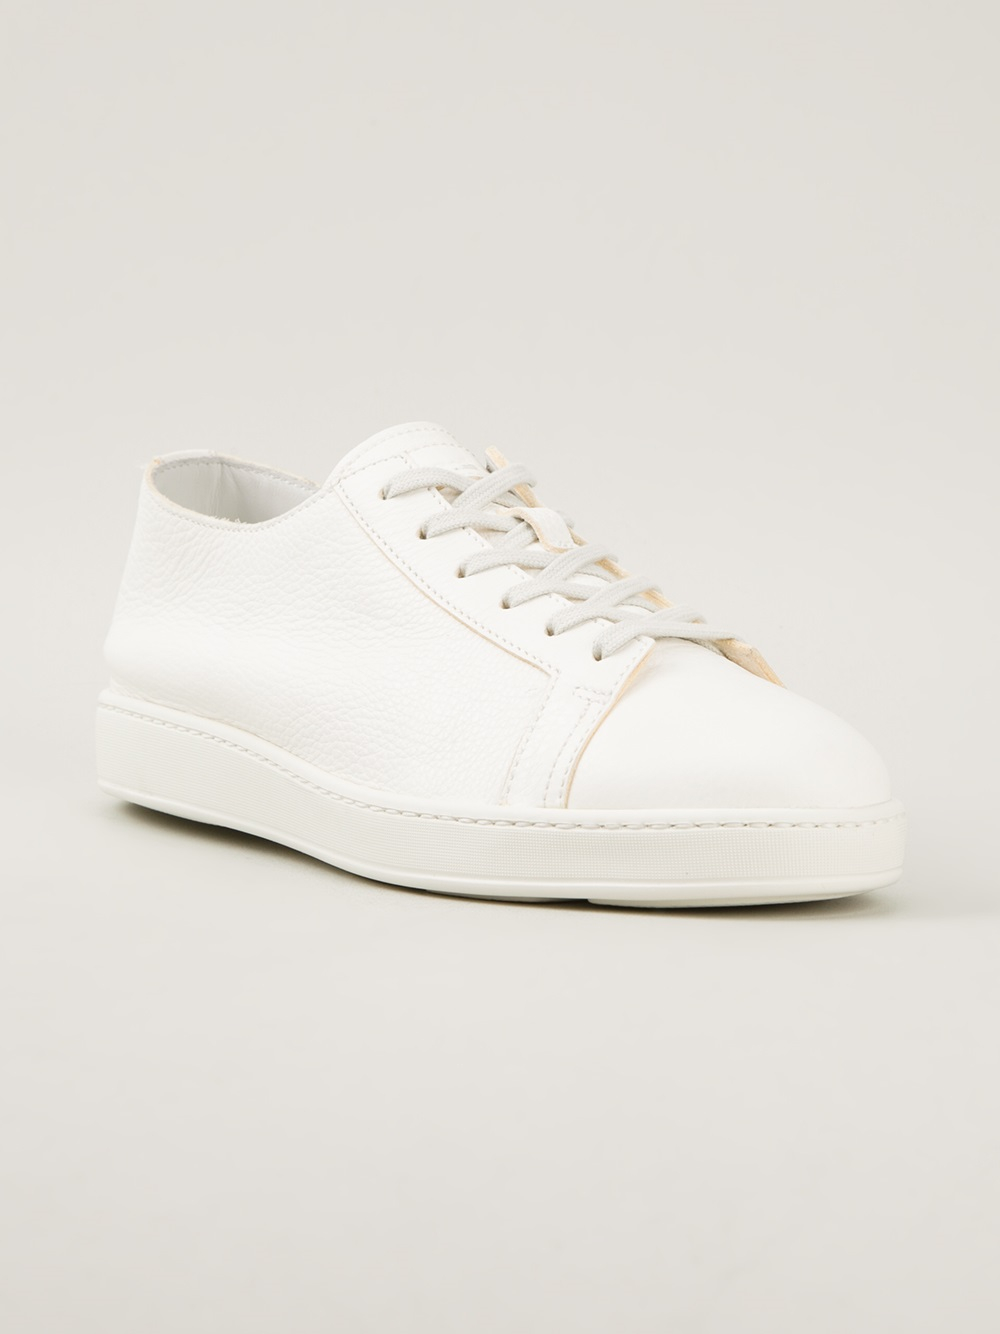 Sneakers off-white Santoni pQGJlD7